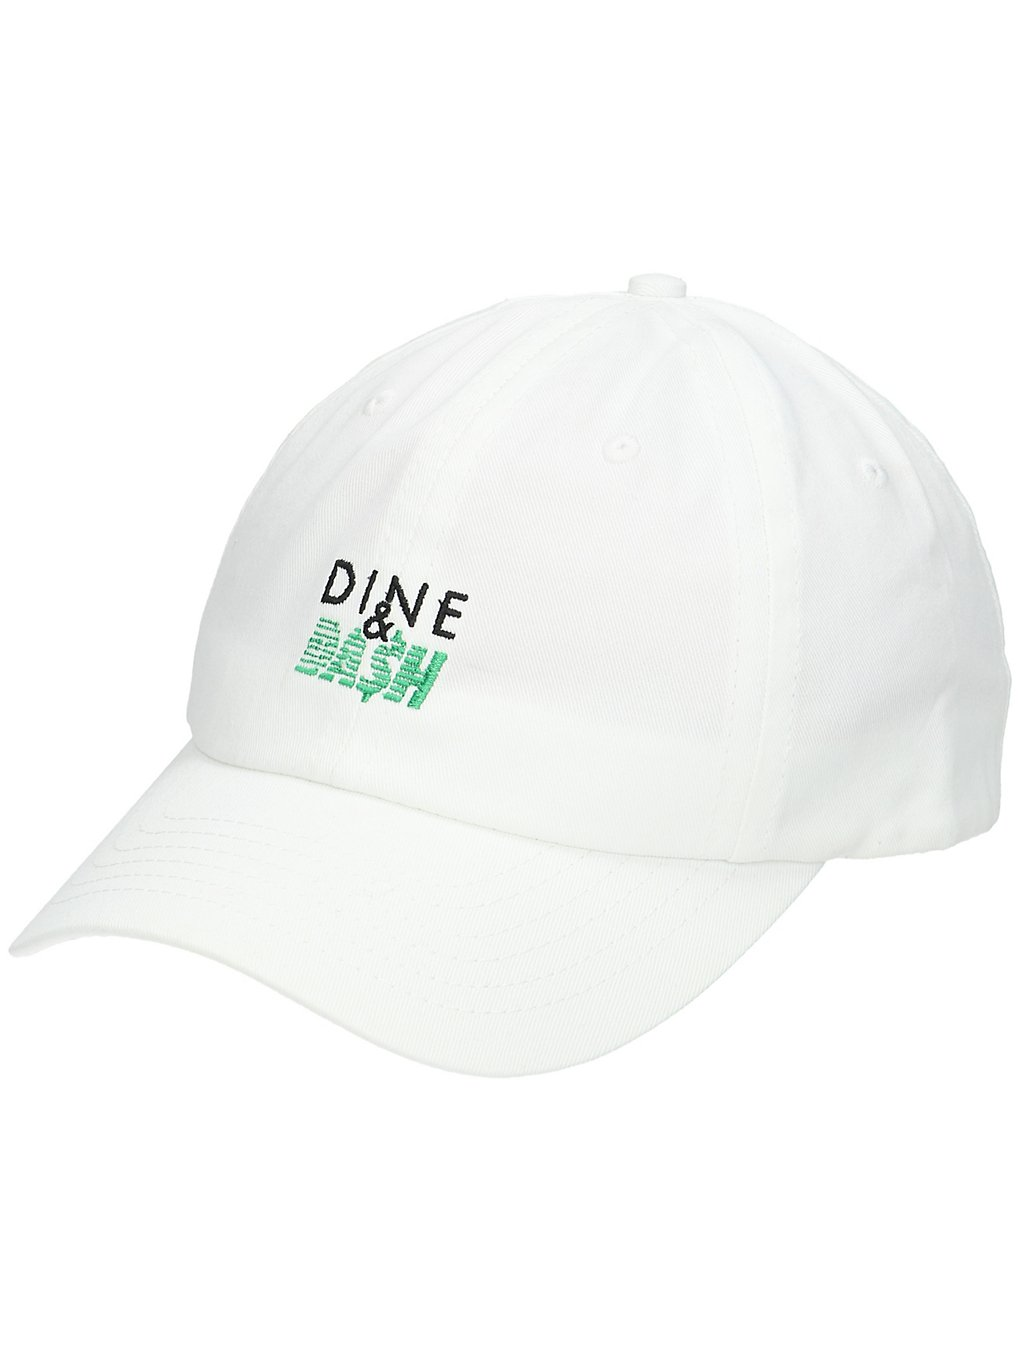 Image of Made in Paradise Dine n Dash Dad Hat Cap bianco